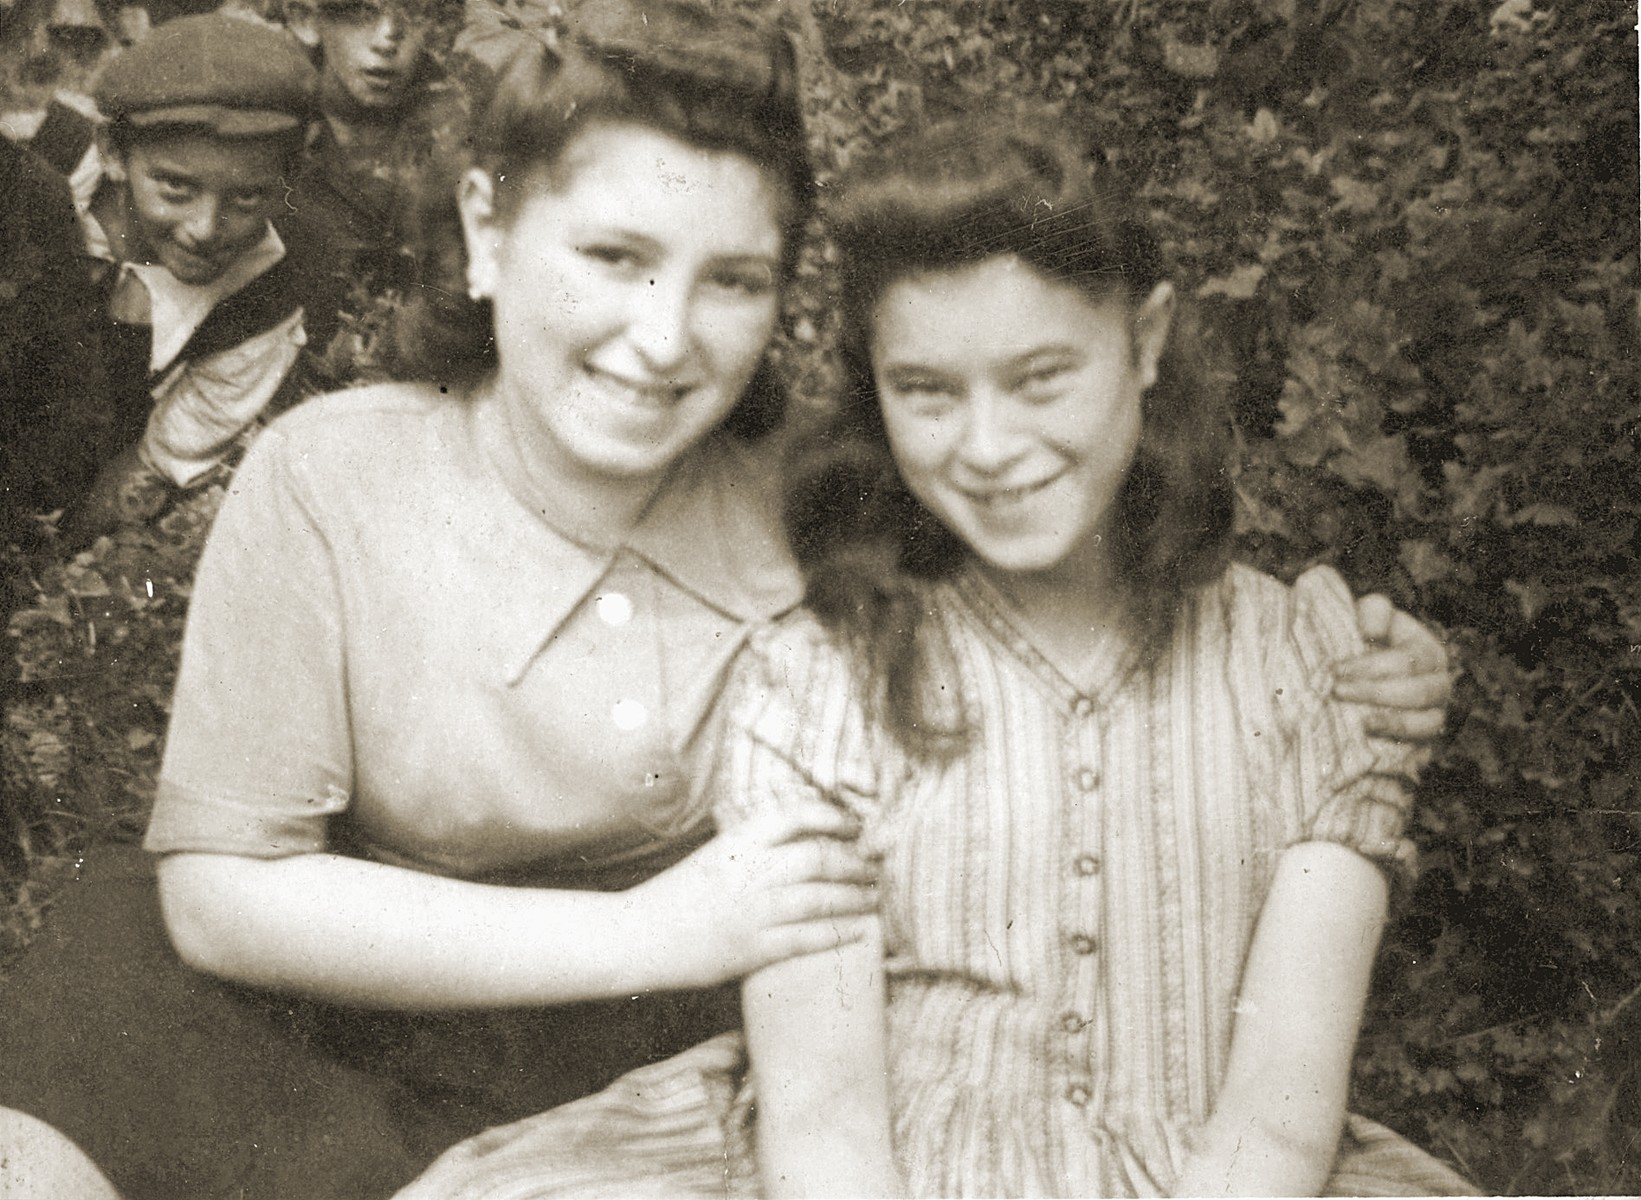 Close up portrait of Mania and Mina Cawadel taken in the Bedzin ghetto.